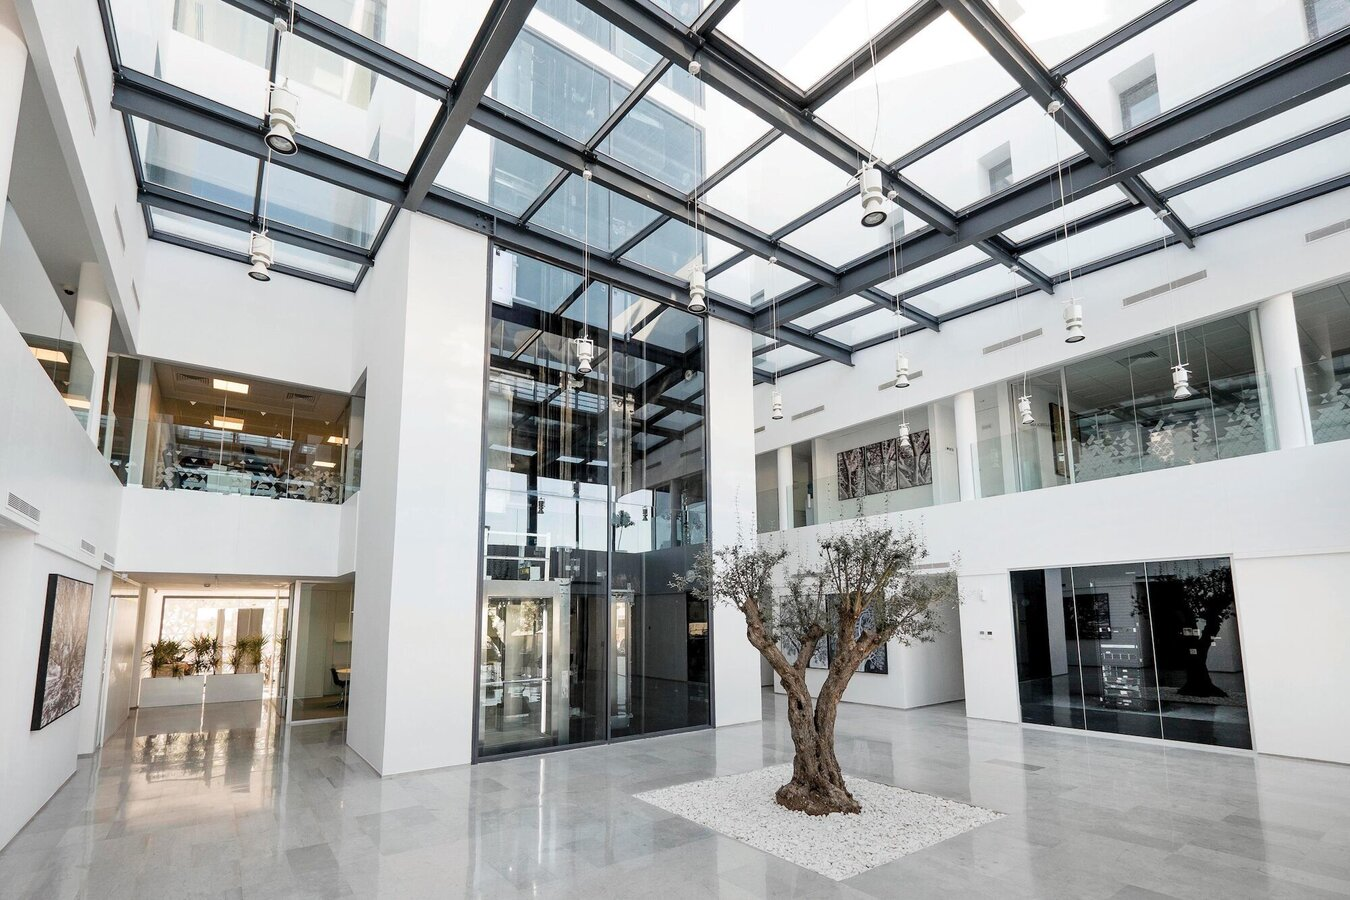 CW 50-RA/FRV Curtain Walls, ES 45Pa Windows, CW 50 Curtain Walls, CS 77 Doors and CP 45Pa Sliding Systems - Wevioo located in Troisvierges, Tunisia